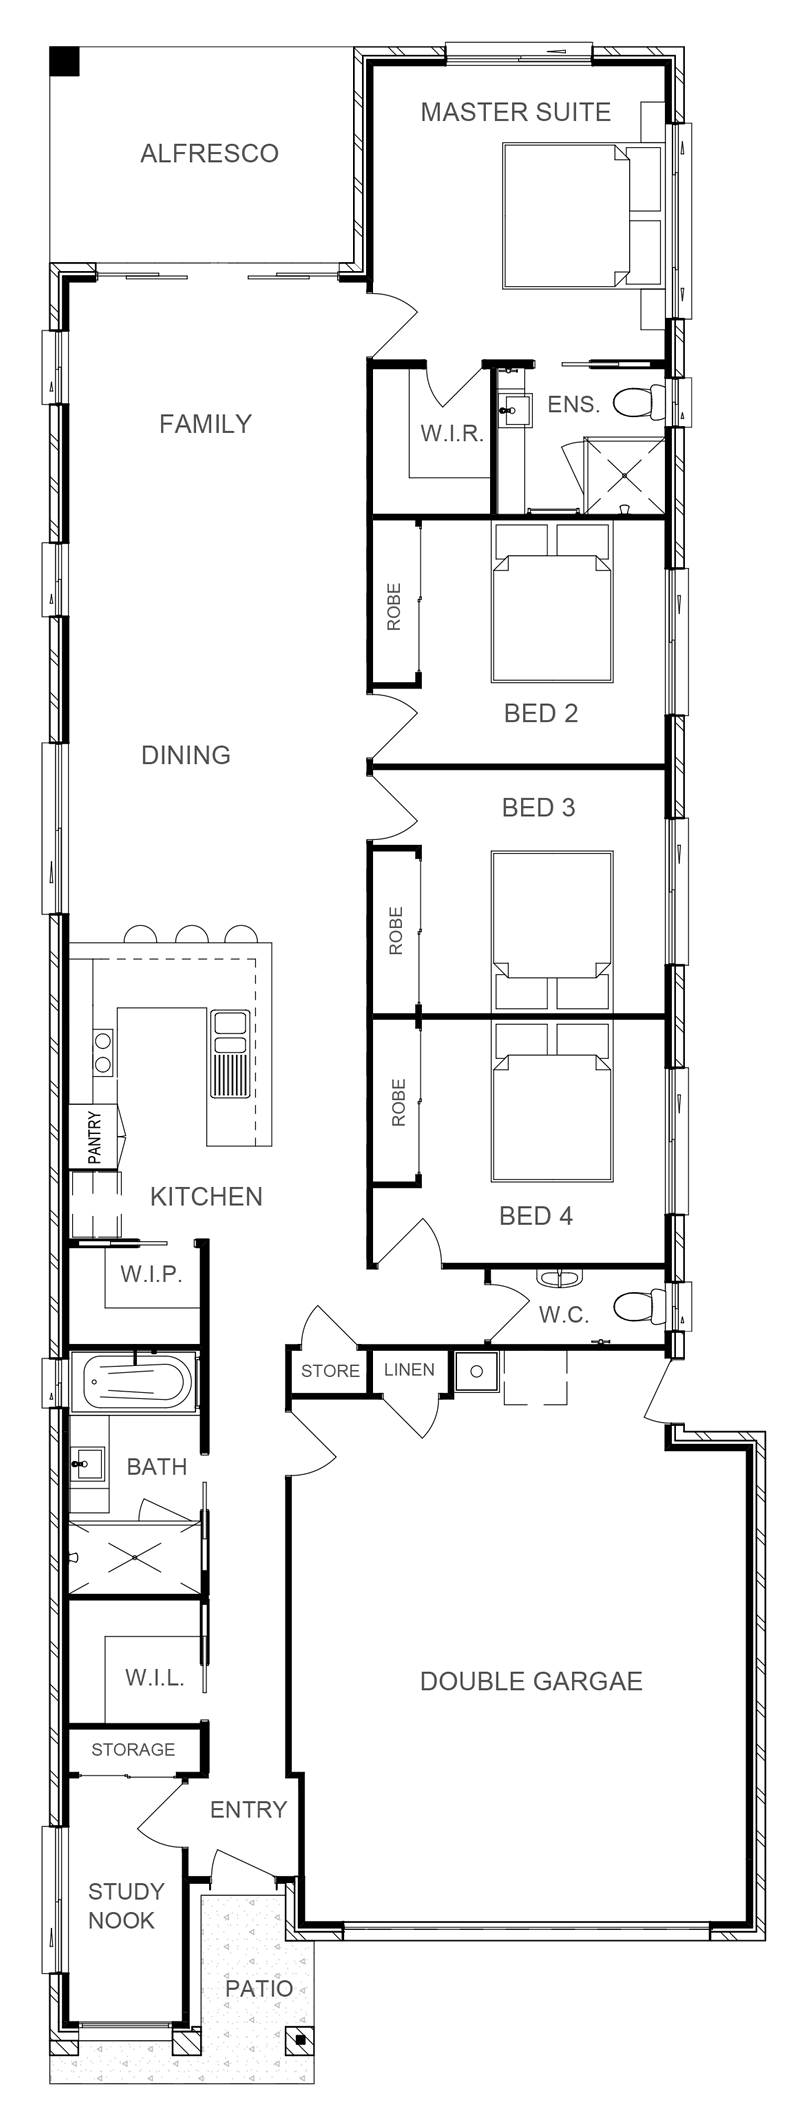 NEBRASKA 196 Floor Plan